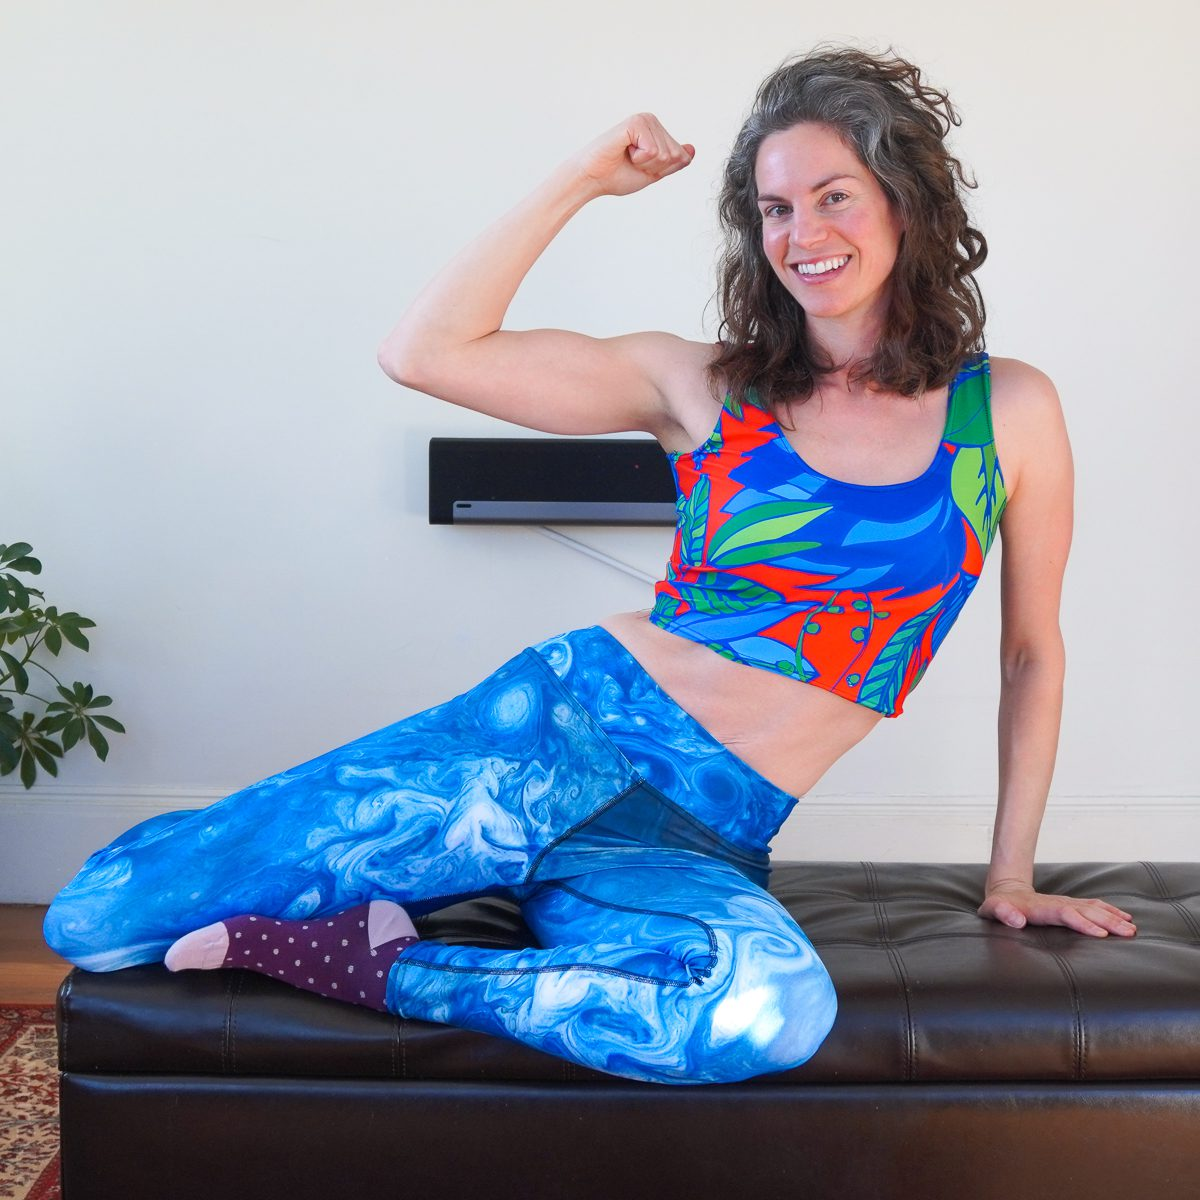 Flexing muscle, colorful leggings and workout clothes